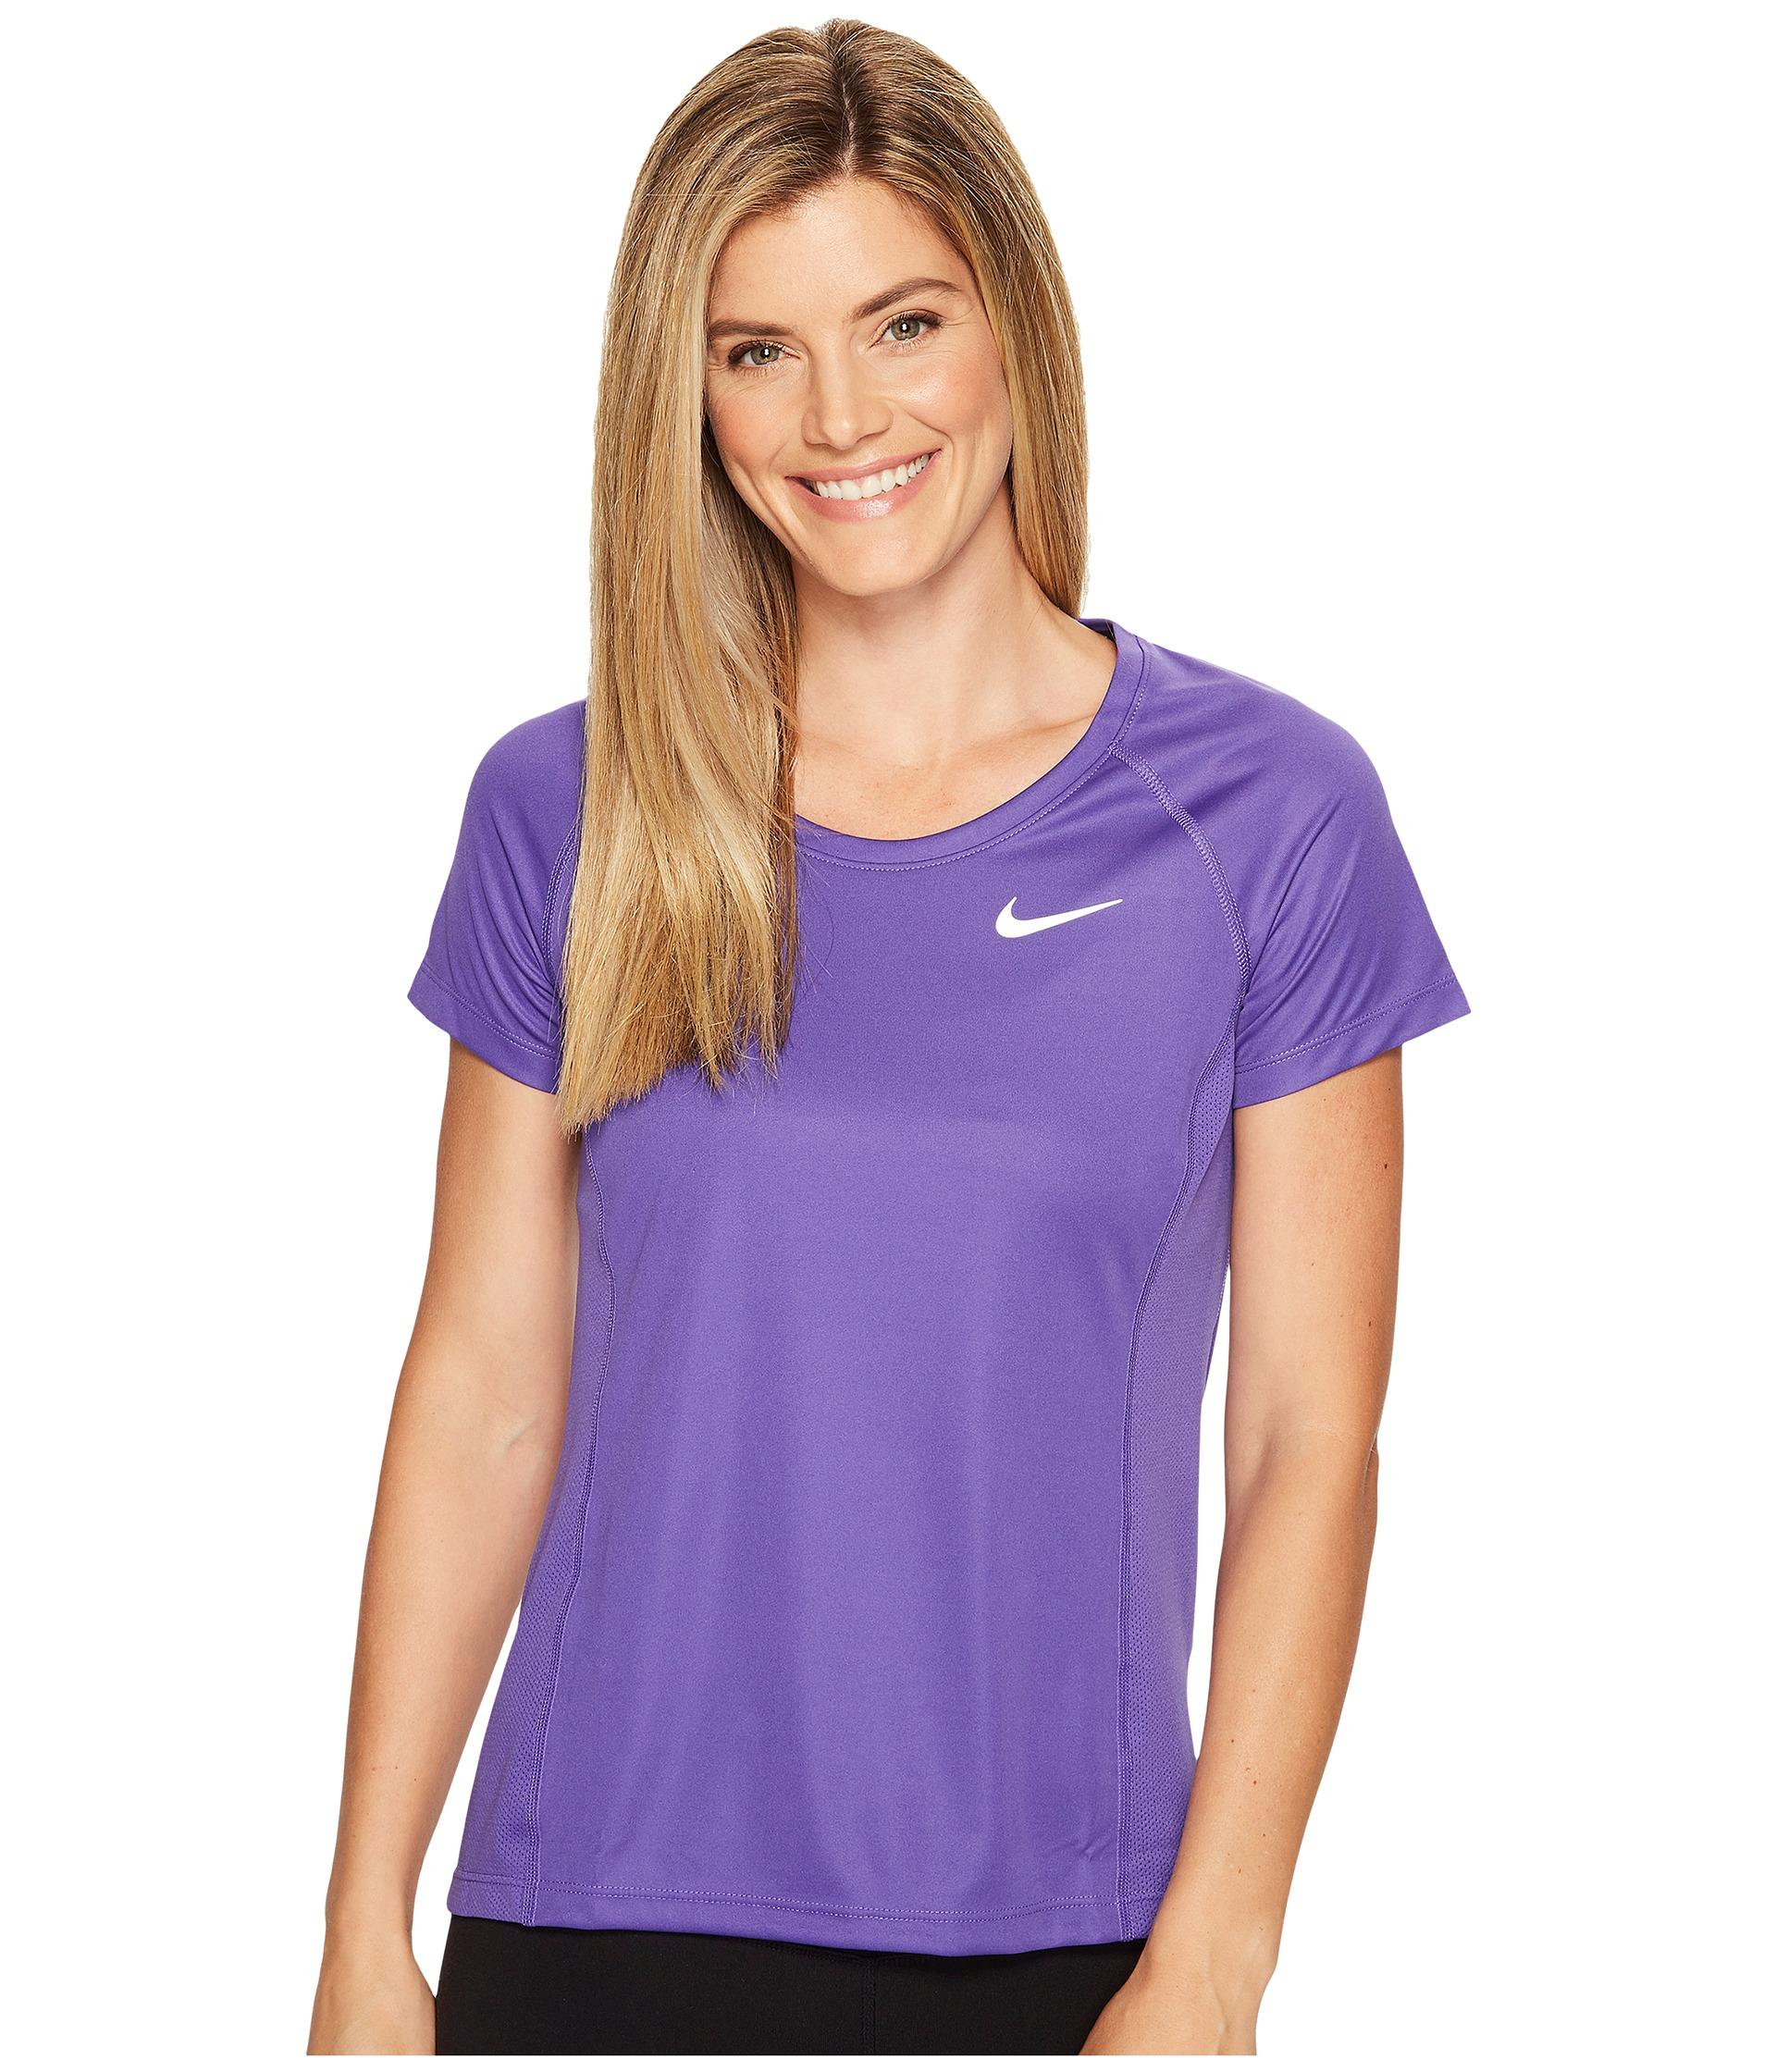 outlet store 452e9 673fc Nike Dry Miler Short Sleeve Running Top in Purple - Lyst